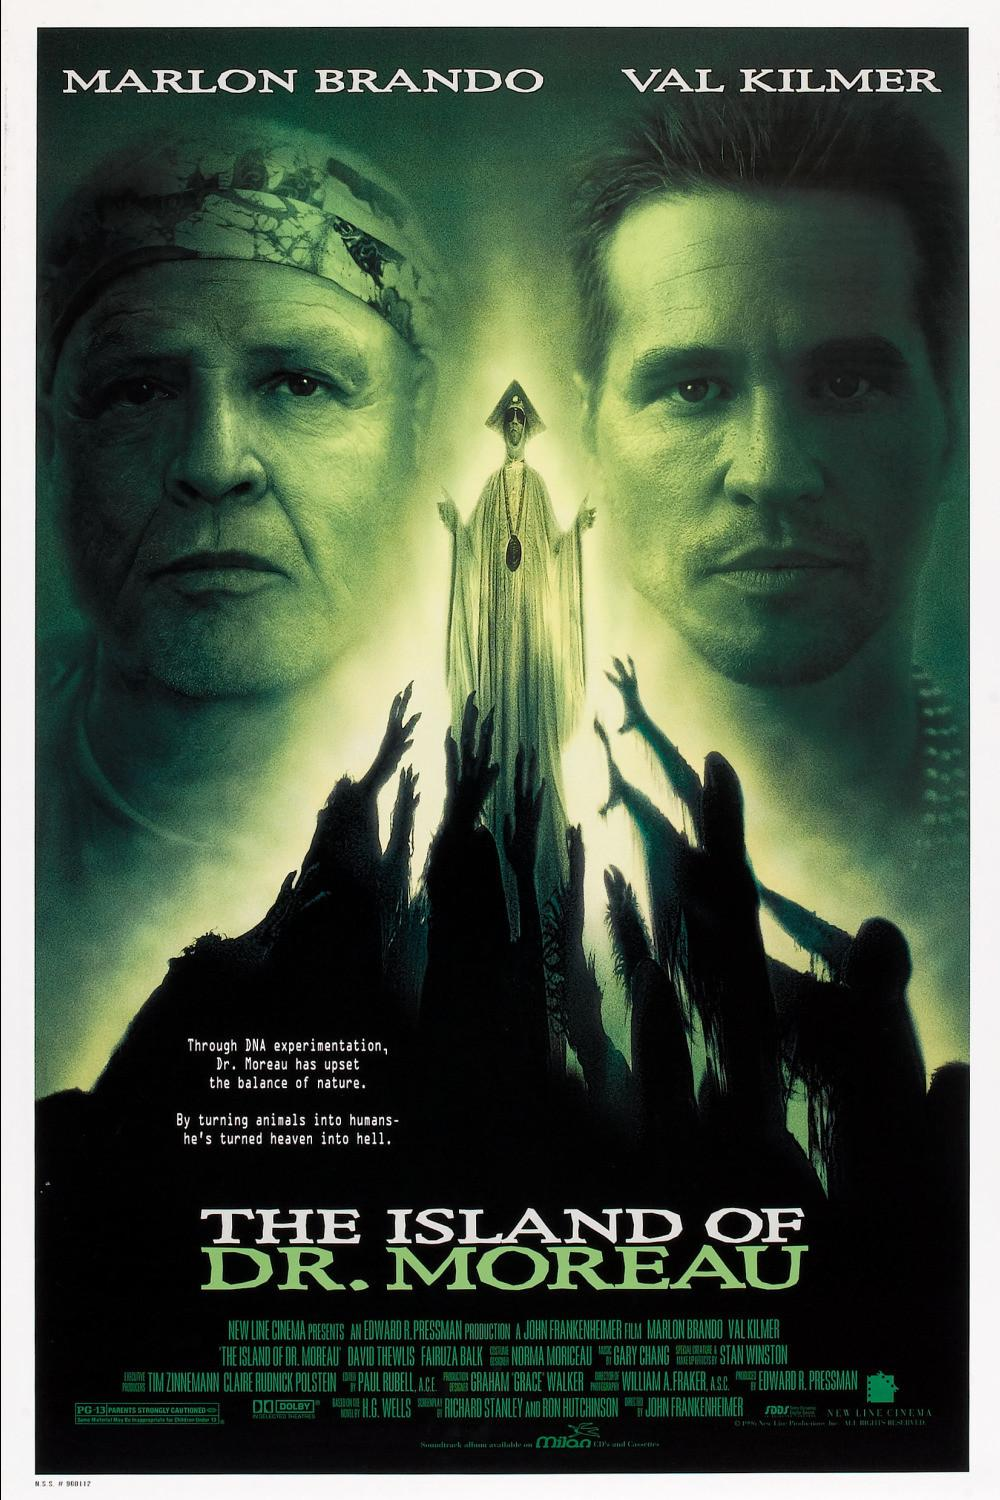 the island of doctor moreau The novel the island of doctor moreau has been adapted to the screen three times:note excluding 1959's terror is a man and 2004's direct-to-video dr.